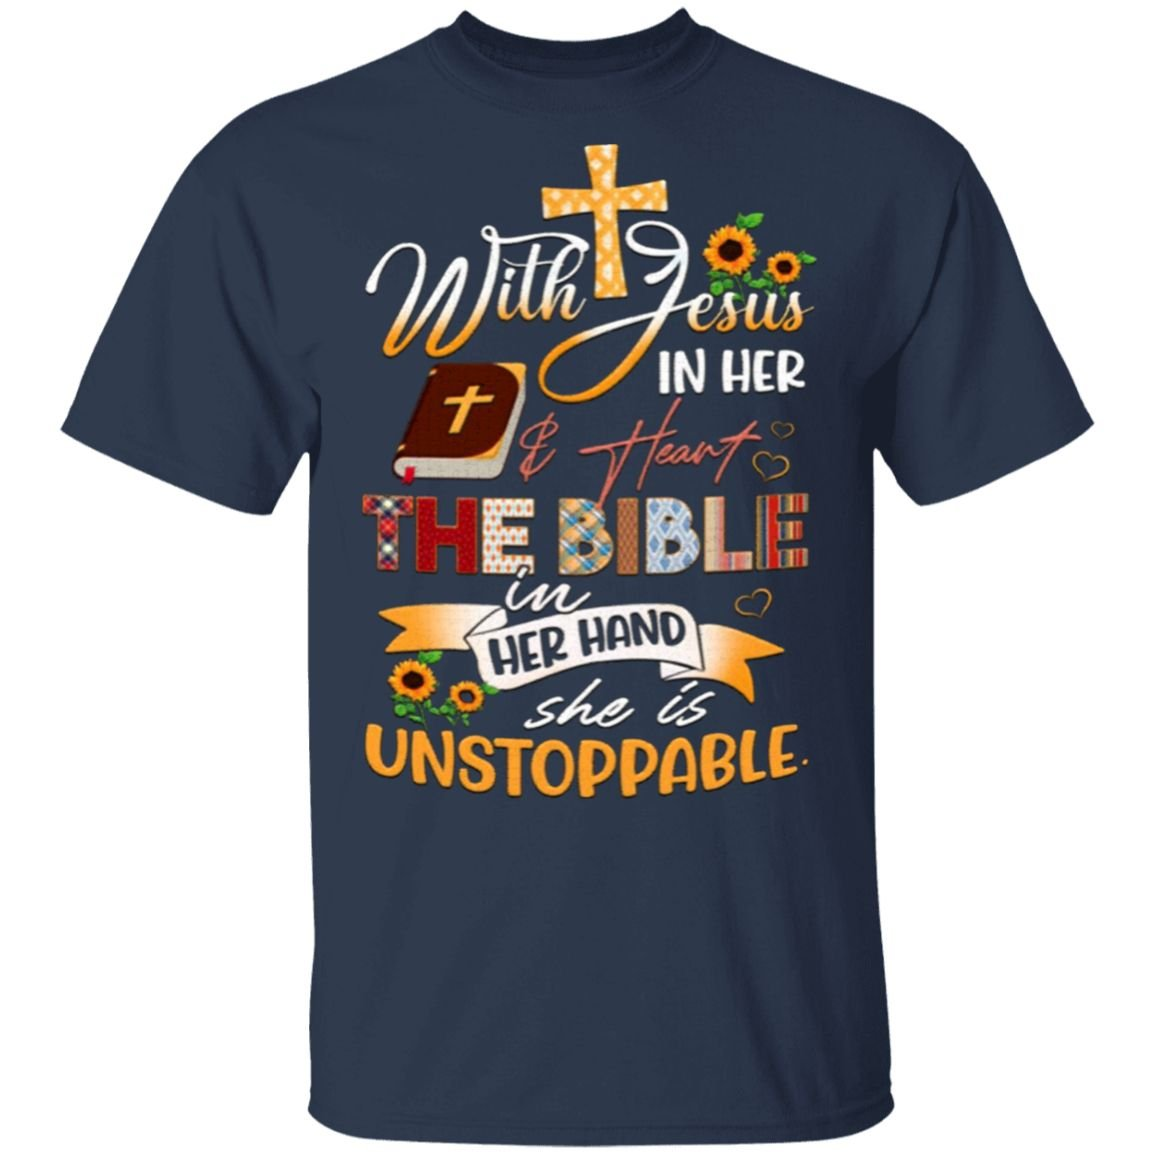 With Jesus In Her And Heart The Bible In Her Hand She Is Unstoppable Crocheting and Jesus T-Shirt